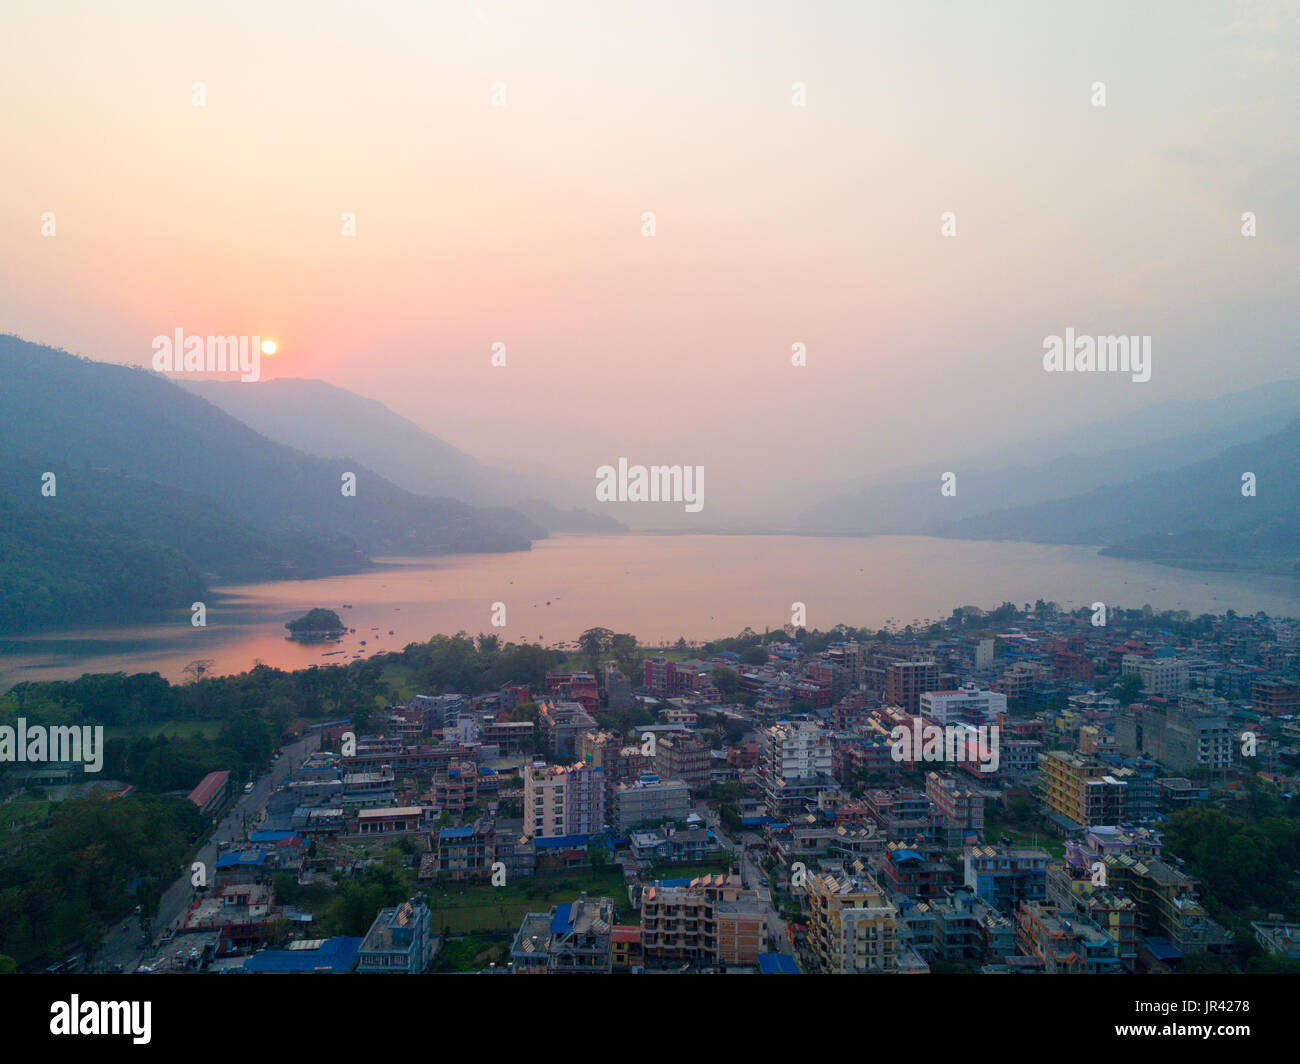 High angle aerial view over Lakeside and Phewa Lake at evening sunset in tourist destination of Pokhara, Nepal - Stock Image